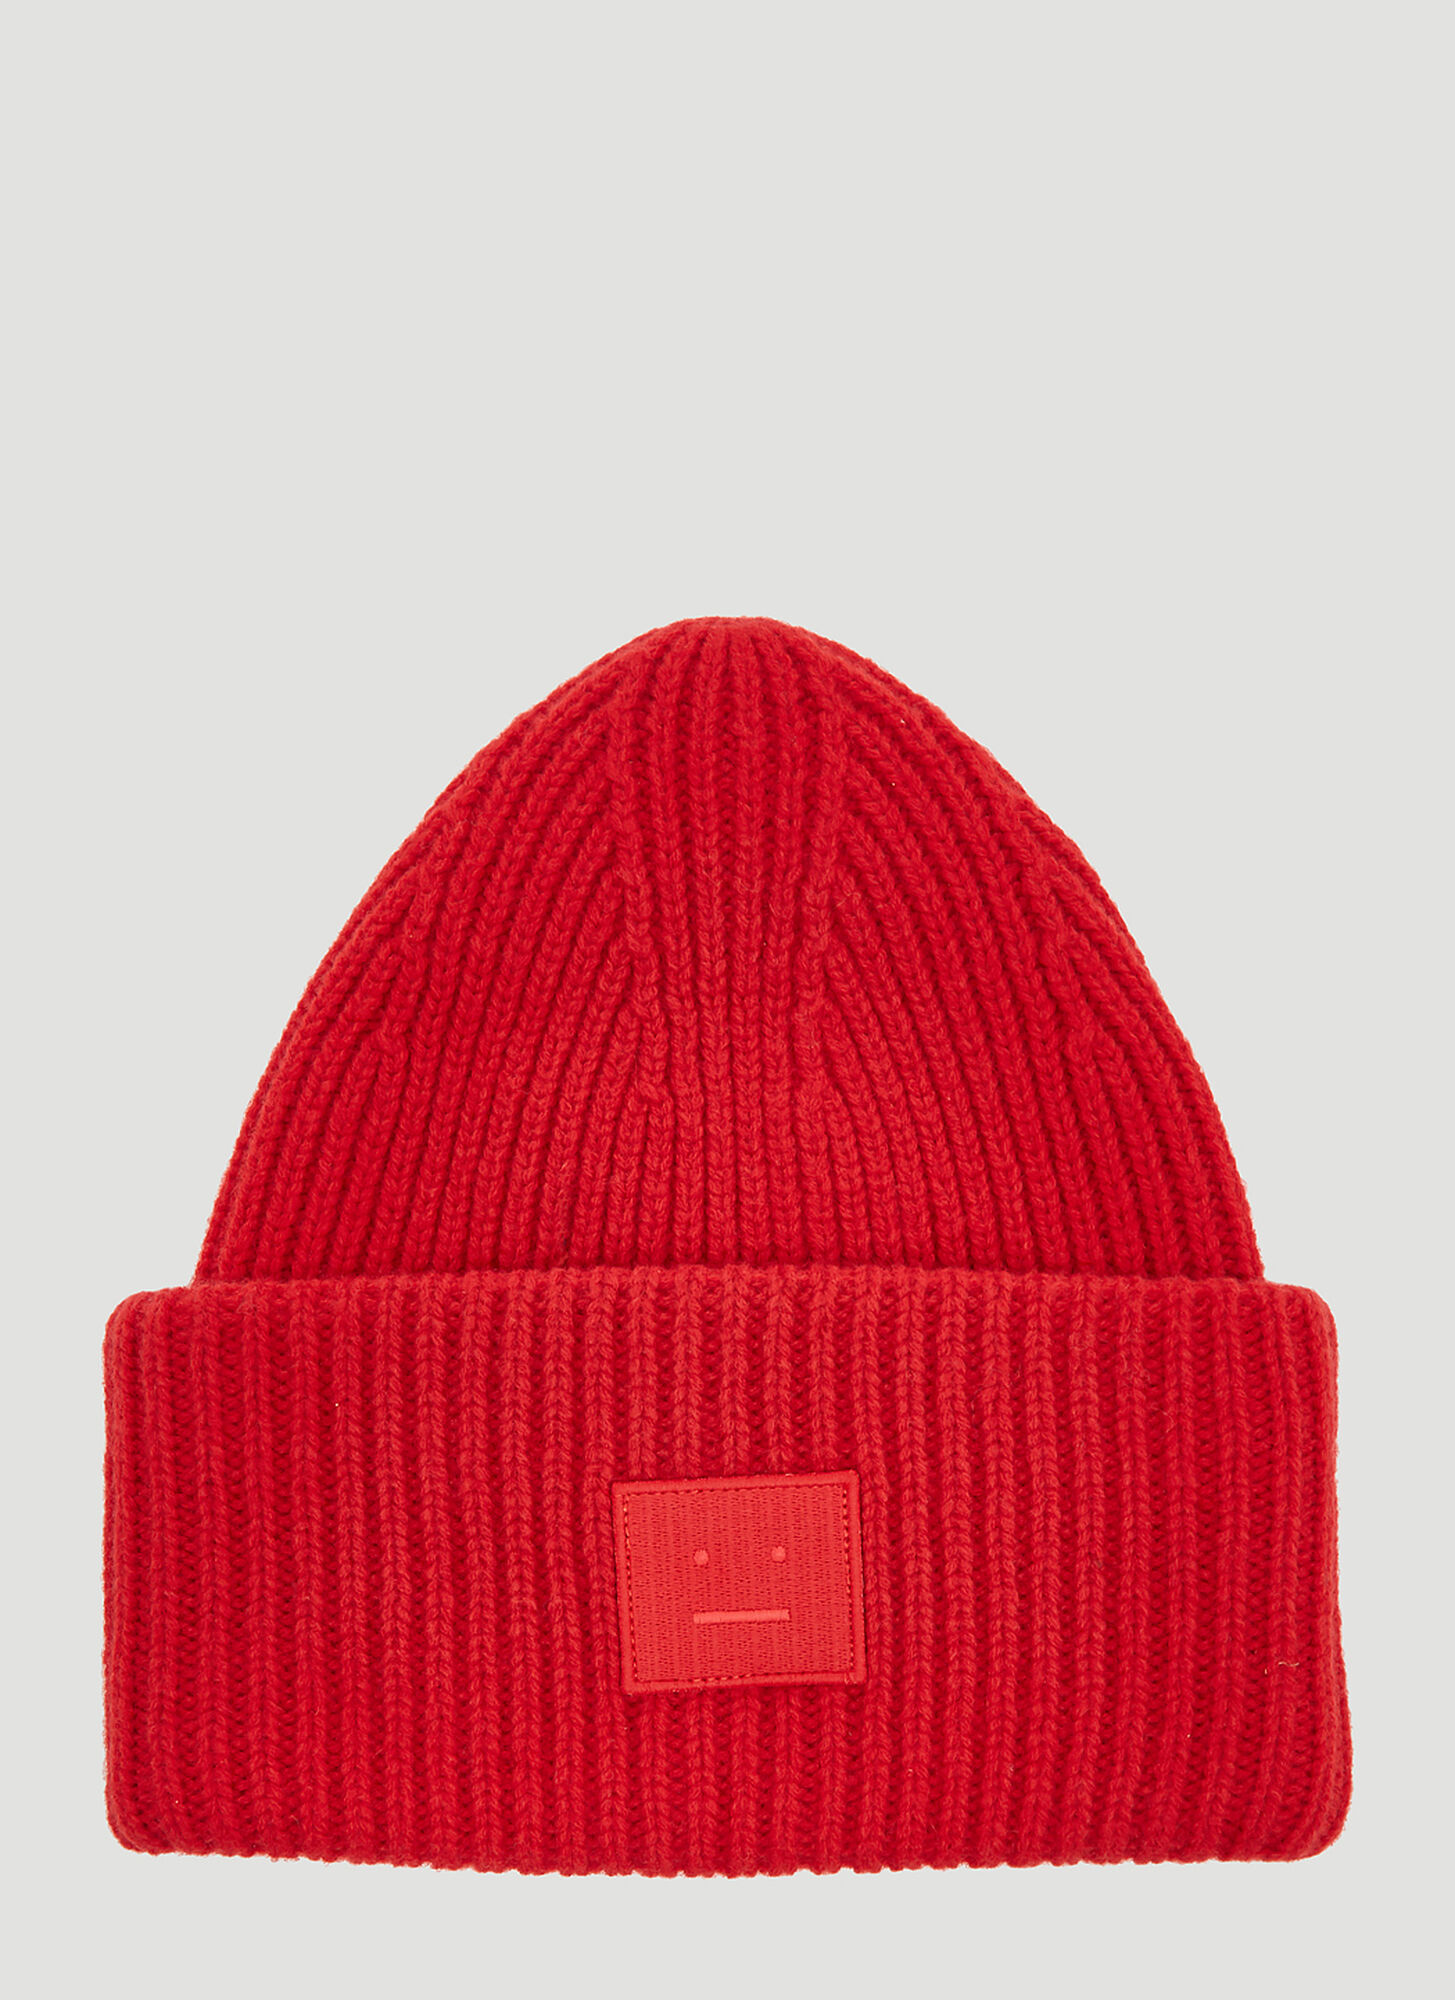 Acne Studios Pansy Face Hat in Red